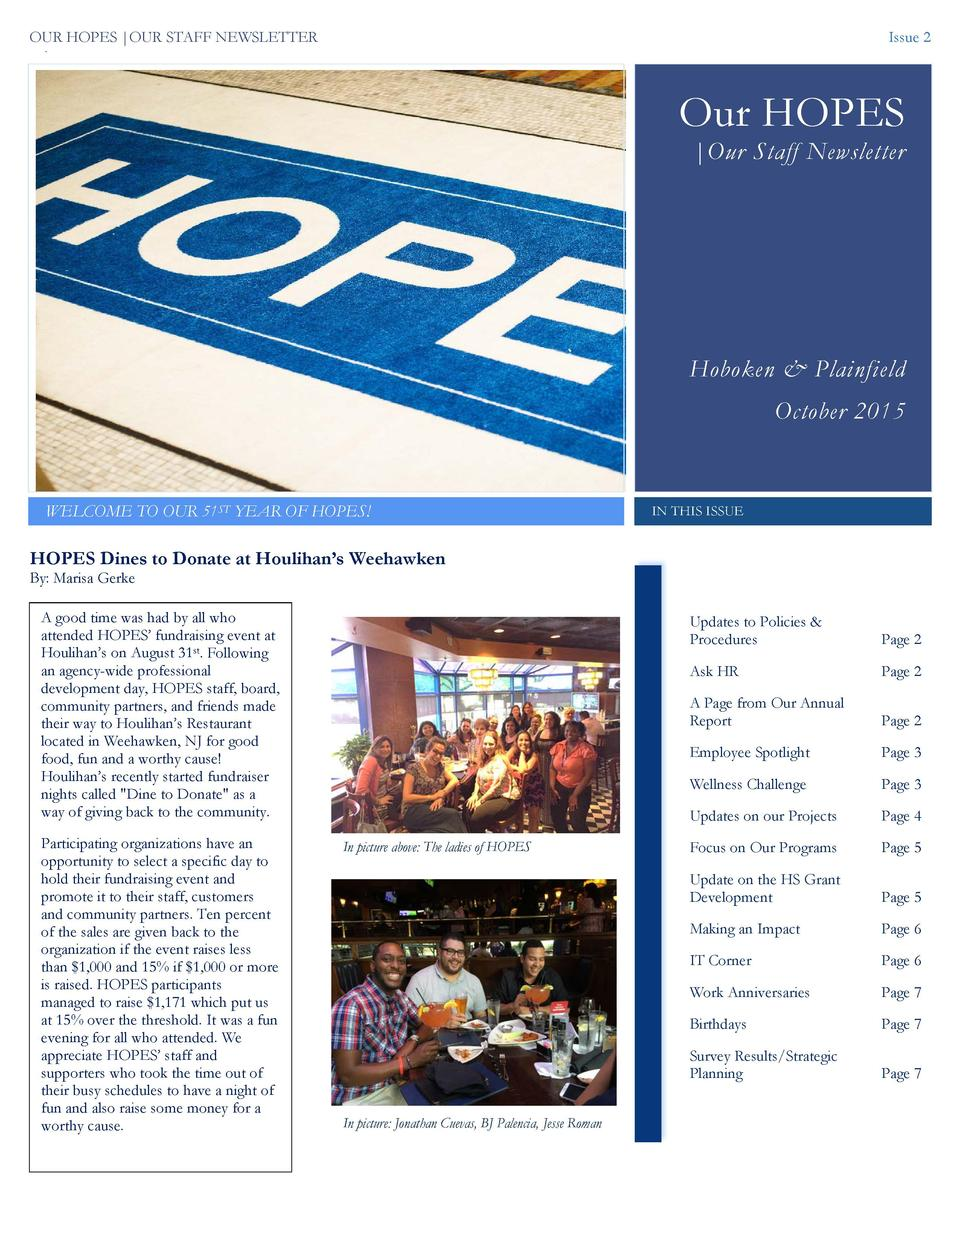 OUR HOPES  OUR STAFF NEWSLETTER  Issue 2  22  Our HOPES  Our Staff Newsletter  Hoboken   Plainfield October 2015  WELCOME ...